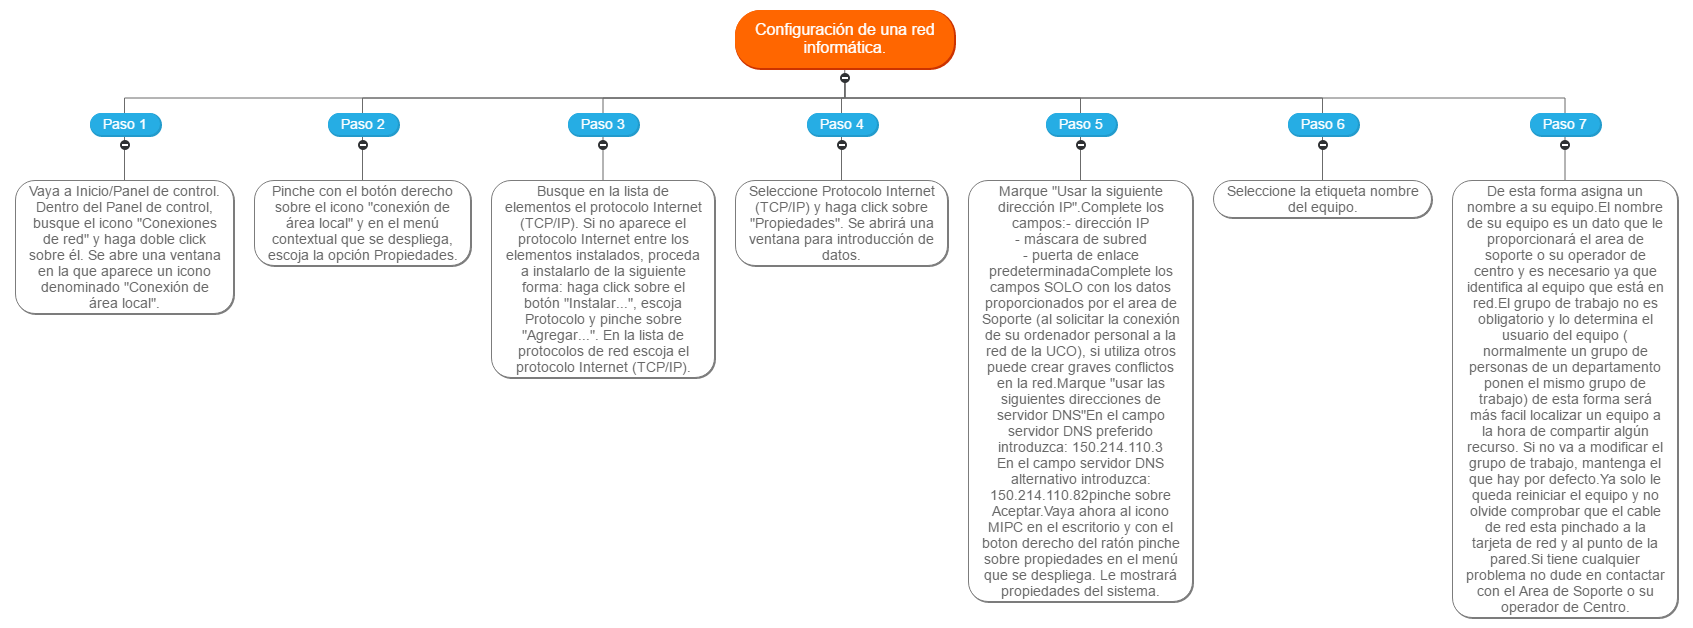 Configuración de una red informática. Mind Map